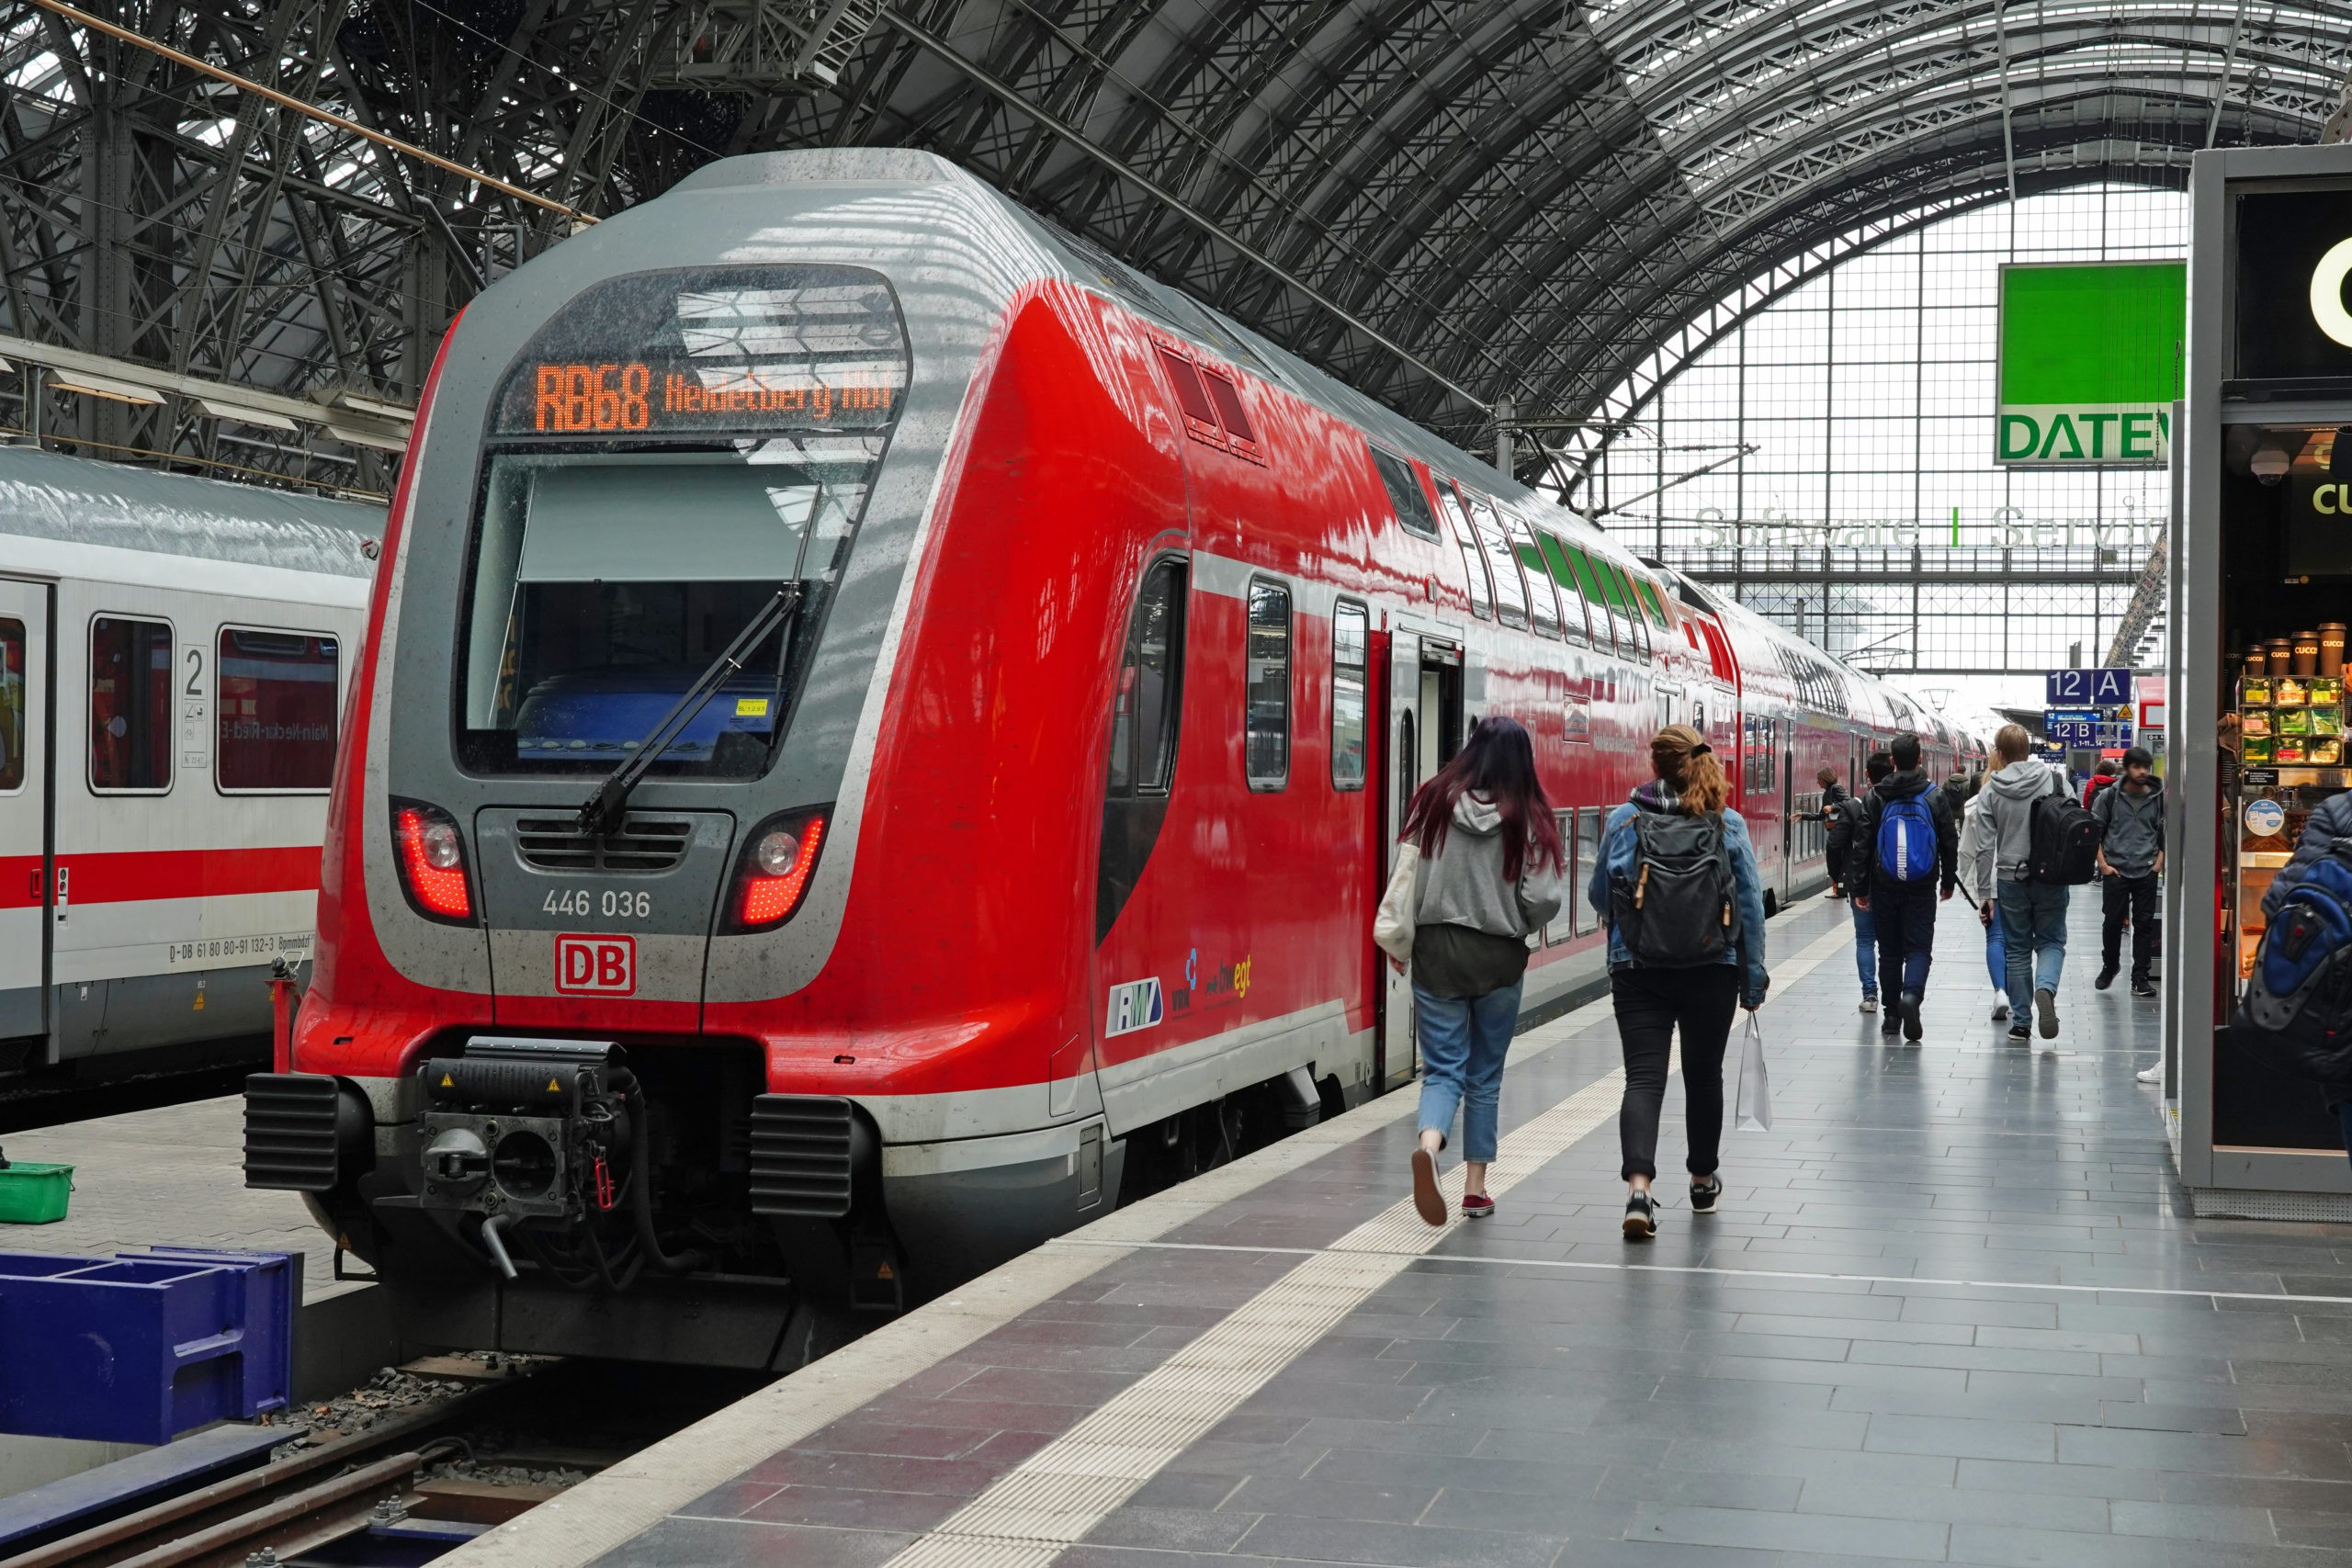 DB Regio regional train (TWINDEXX) in Frankfurt